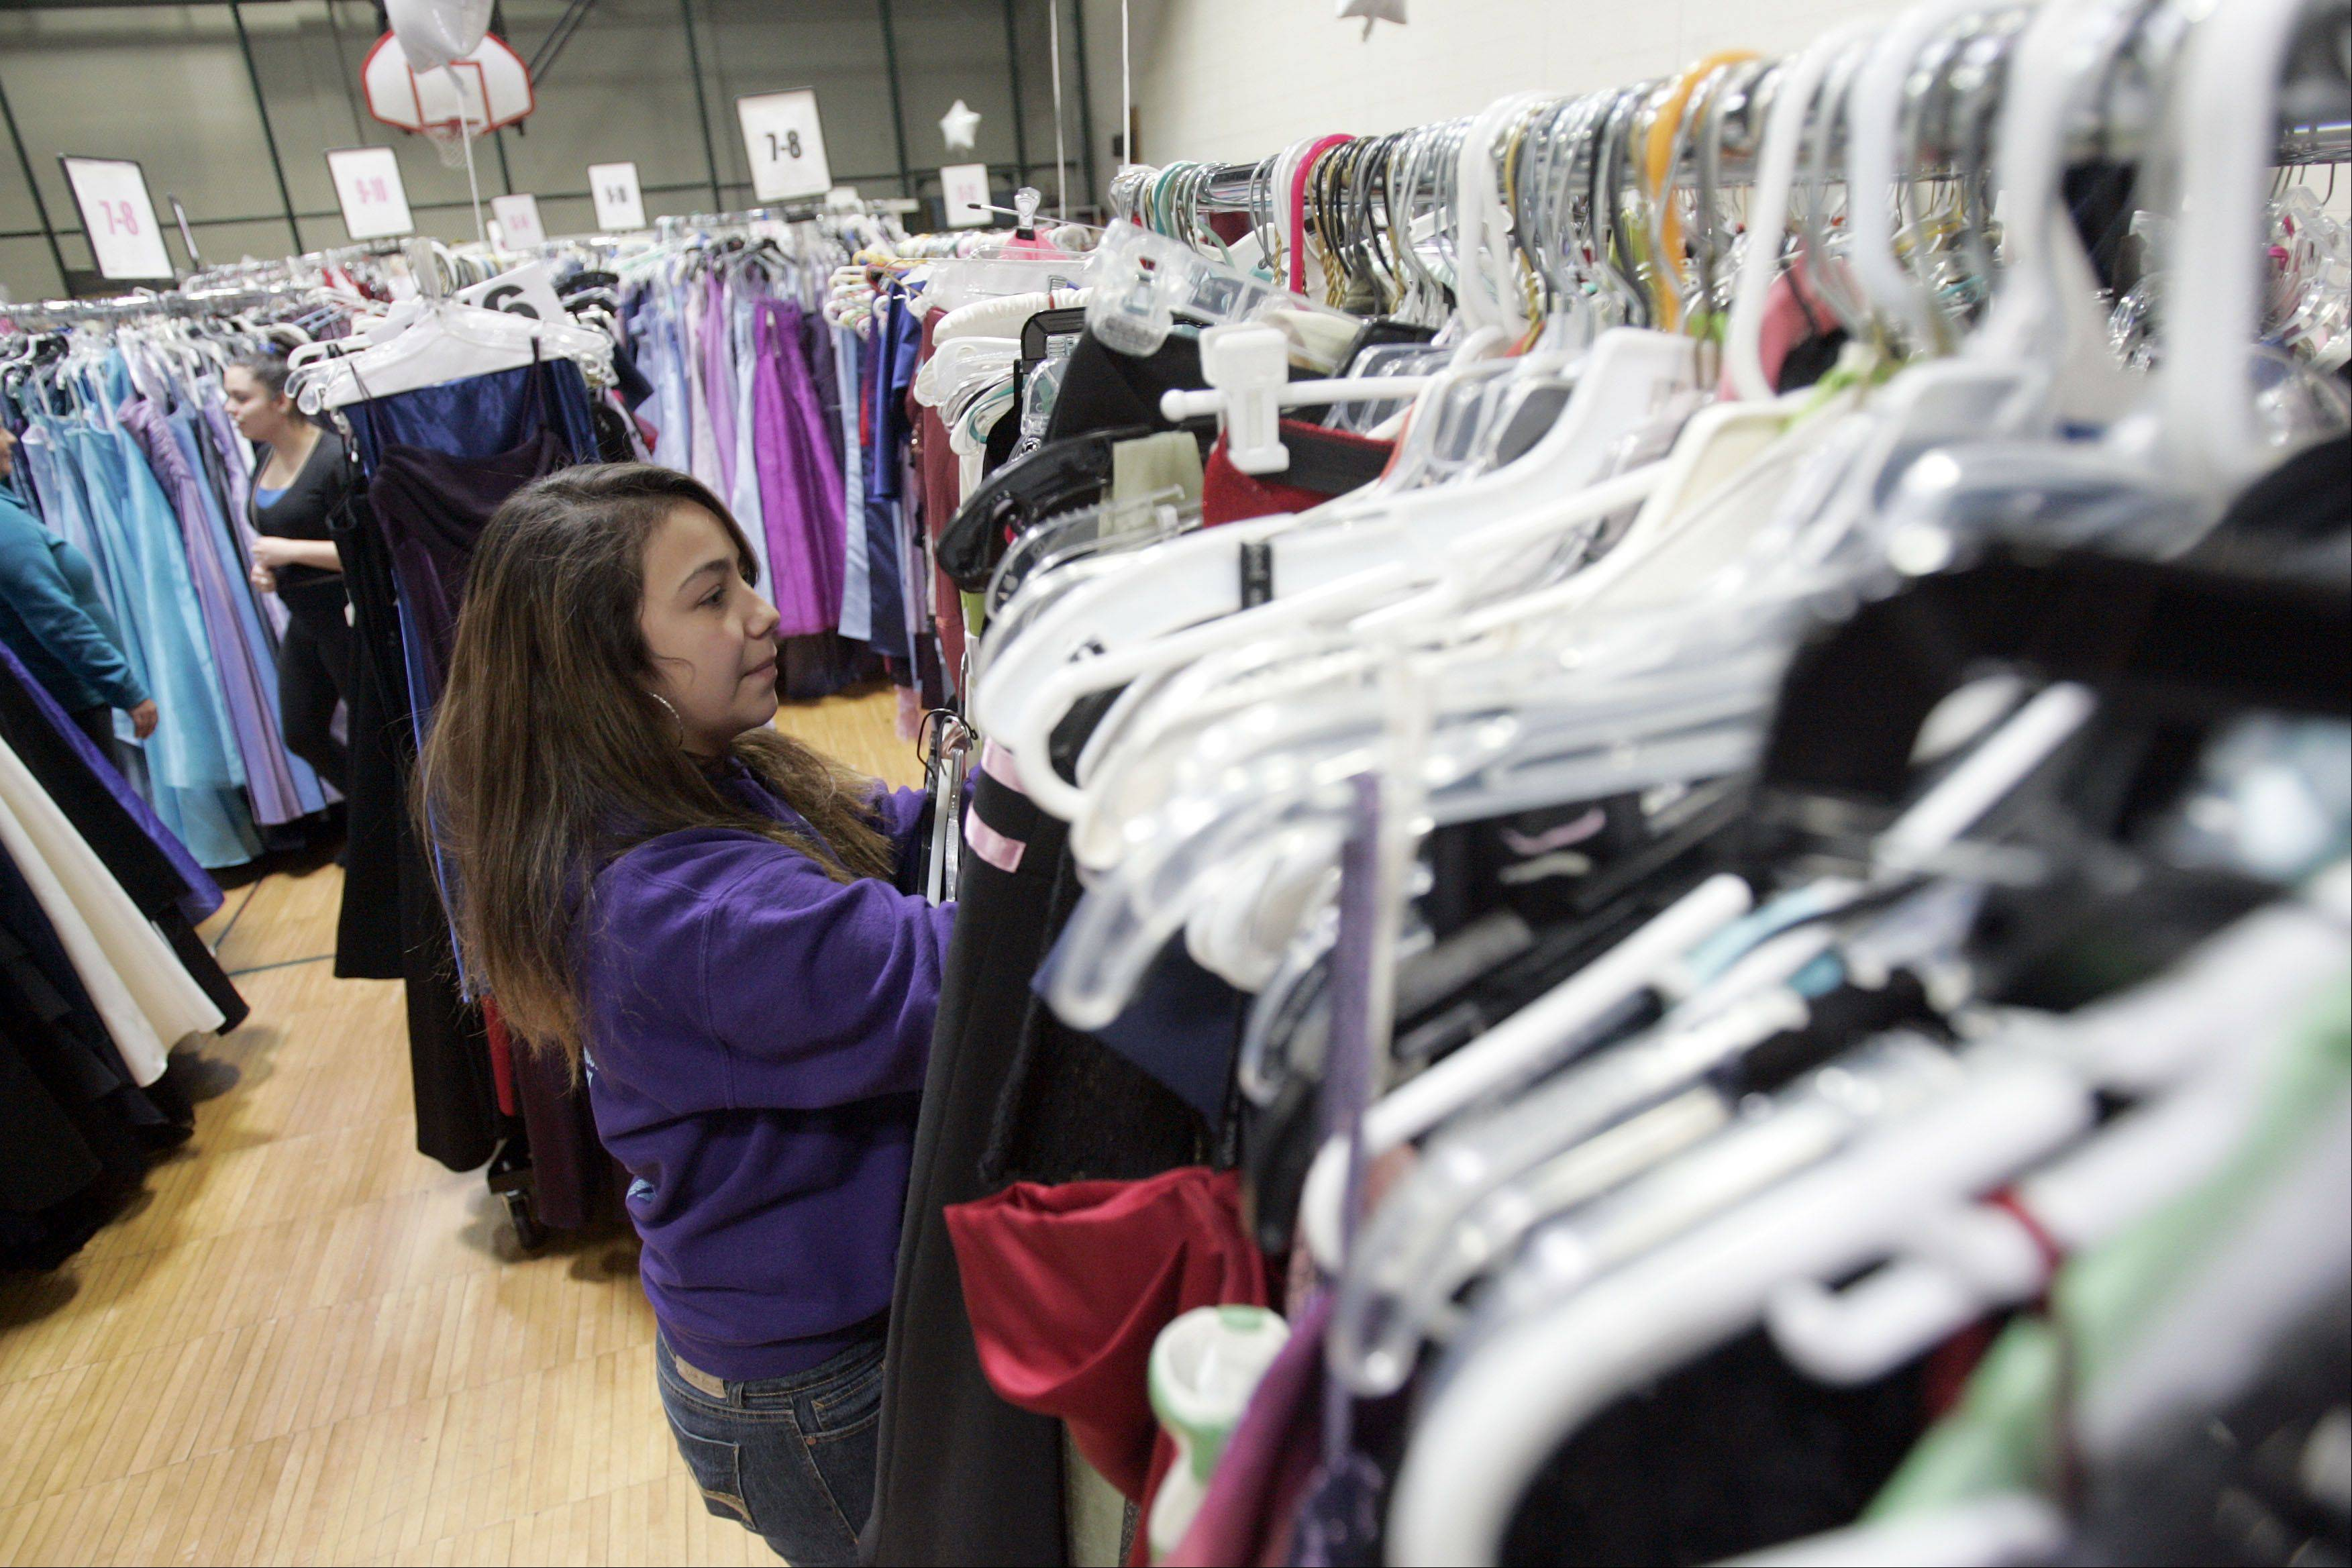 Looking for just the right dress, 15-year-old Karina Robledo of Elgin searches through some of the 4,000 options during the annual Cinderella's Closet event Saturday at the YWCA in Elgin.